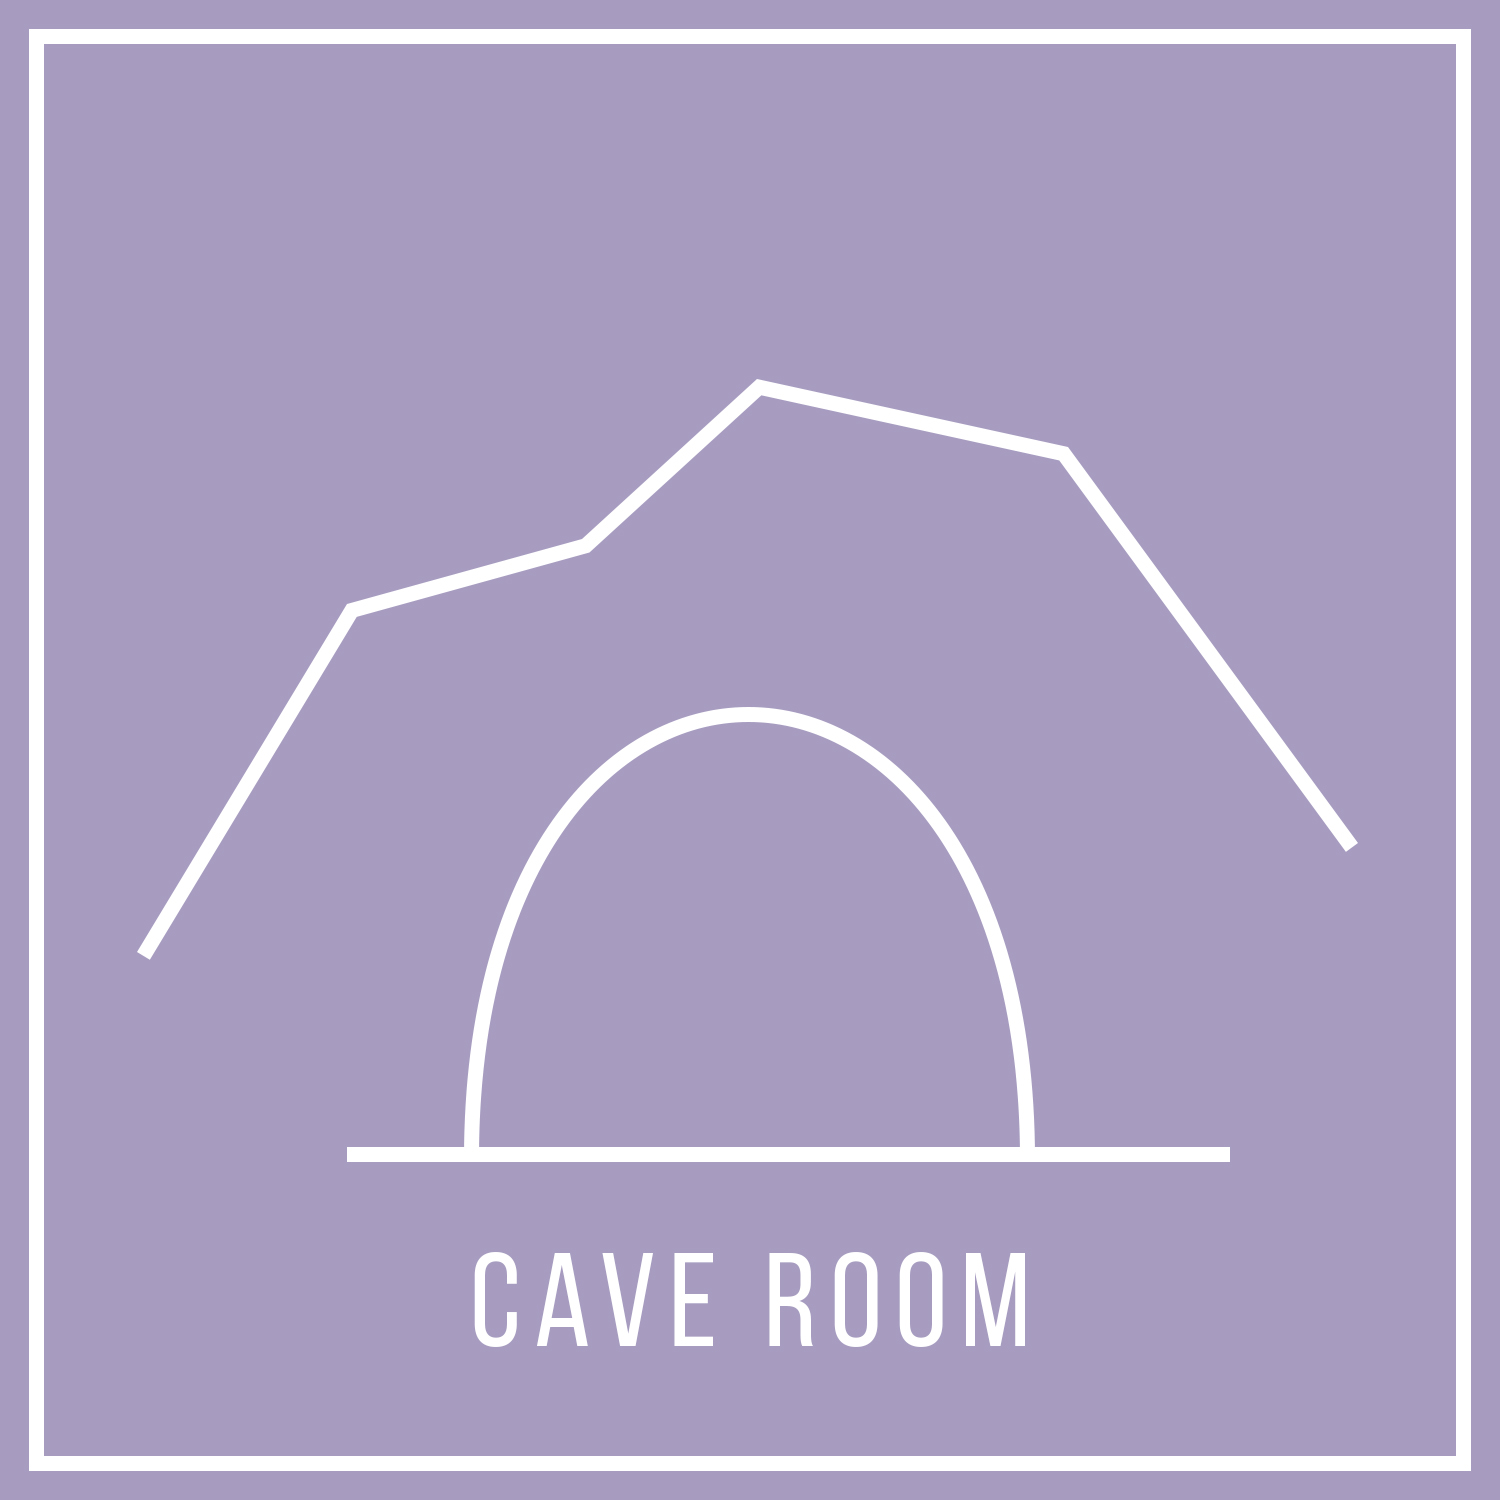 aya-kapadokya-room-features-chapel-suite-square-cave-room